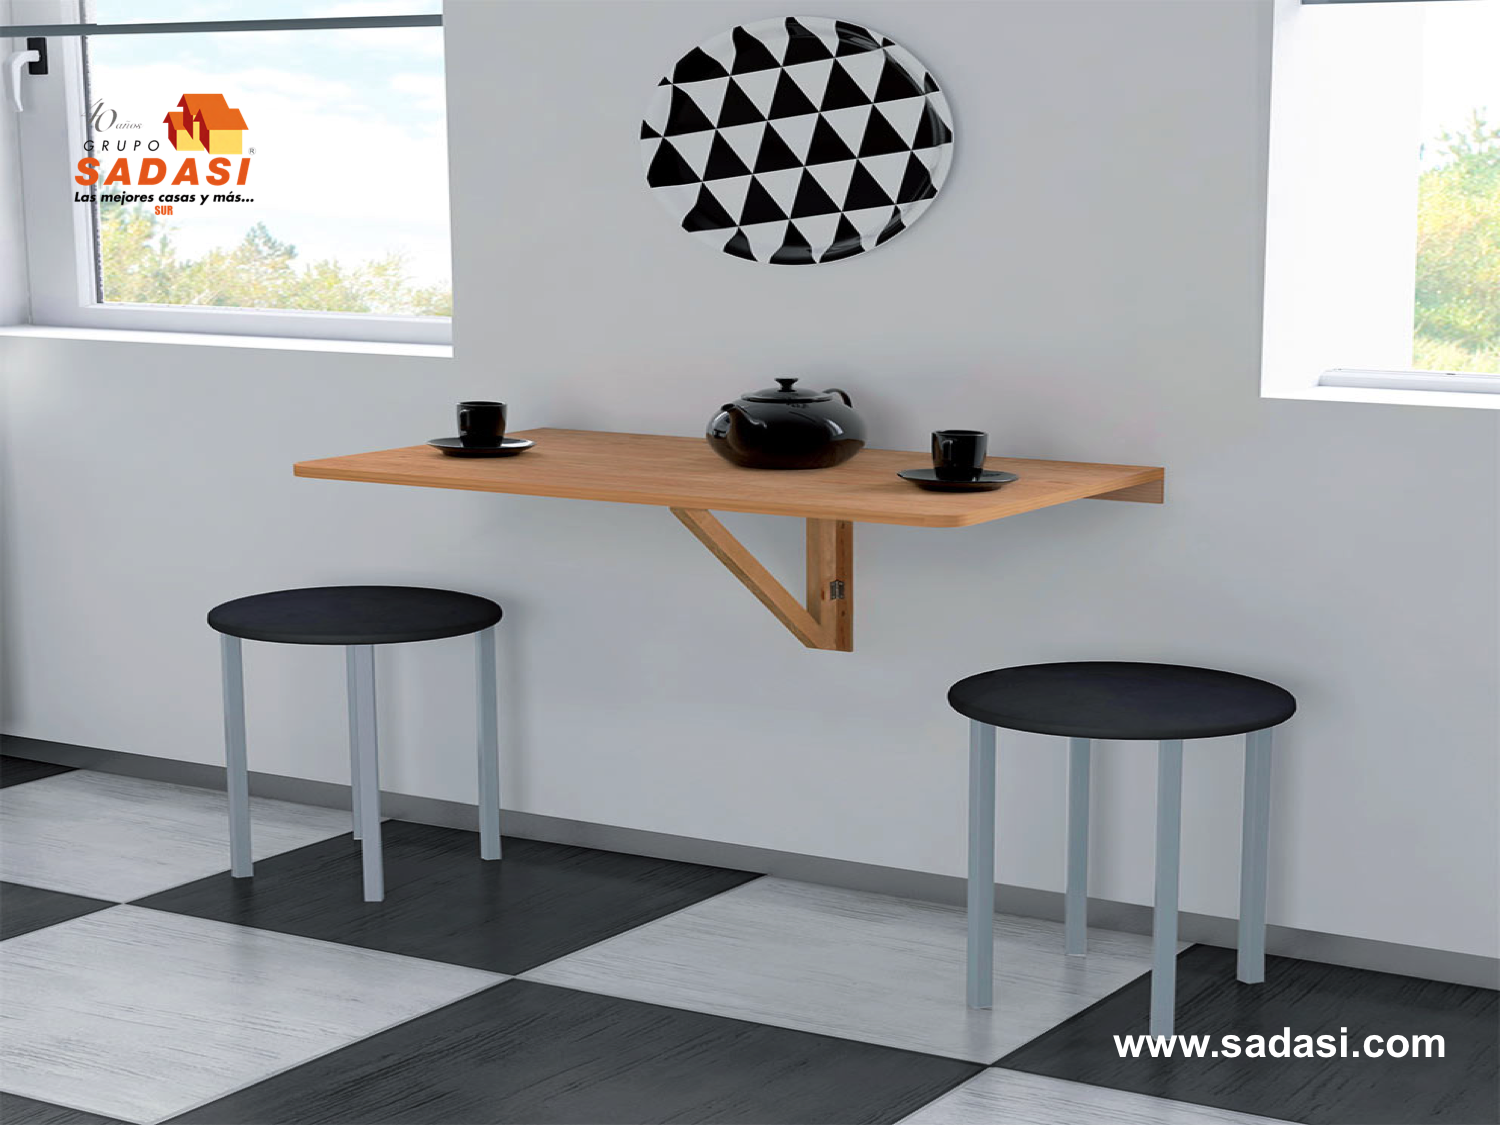 M s de 25 ideas incre bles sobre mesa abatible pared en - Mesa abatible de pared carrefour ...